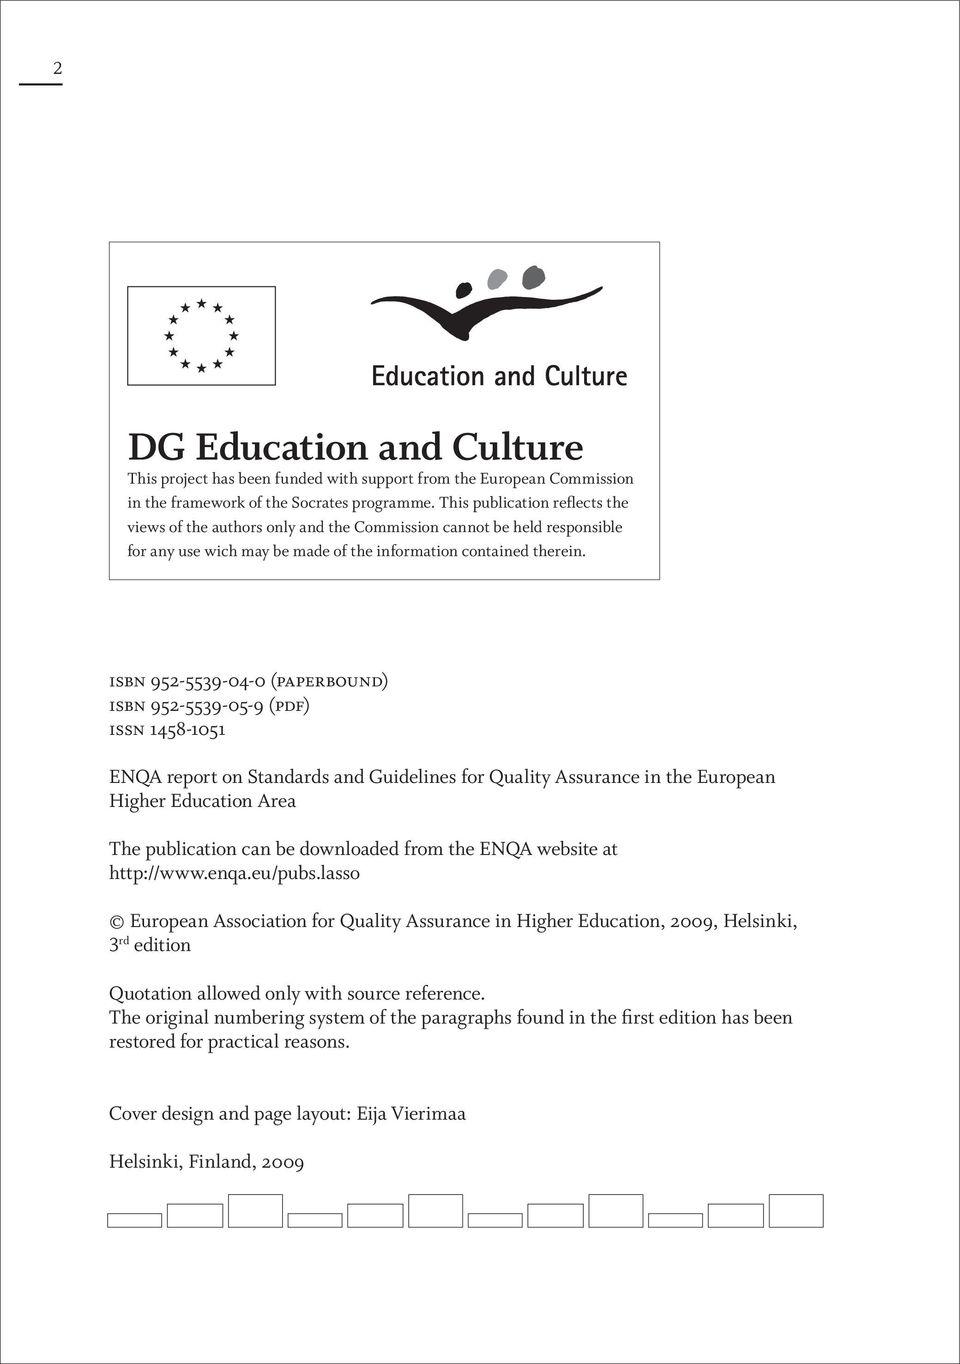 isbn 952-5539-04-0 (paperbound) isbn 952-5539-05-9 (pdf) issn 1458-1051 ENQA report on Standards and Guidelines for Quality Assurance in the European Higher Education Area The publication can be